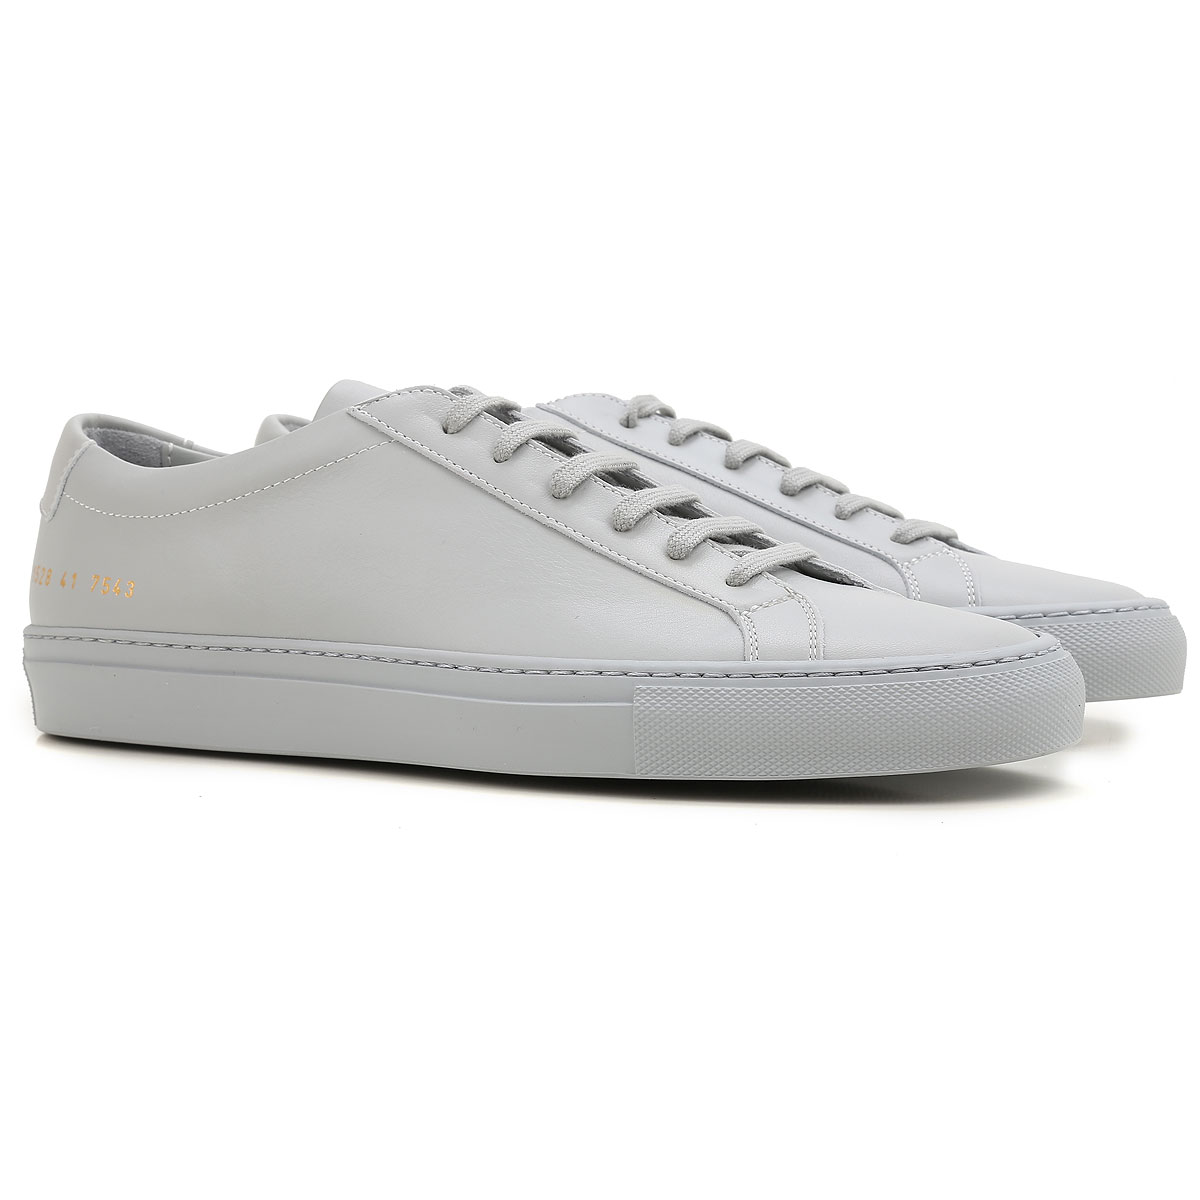 Image of Common Projects Sneakers for Men, Grey, Leather, 2017, 10 10.5 8